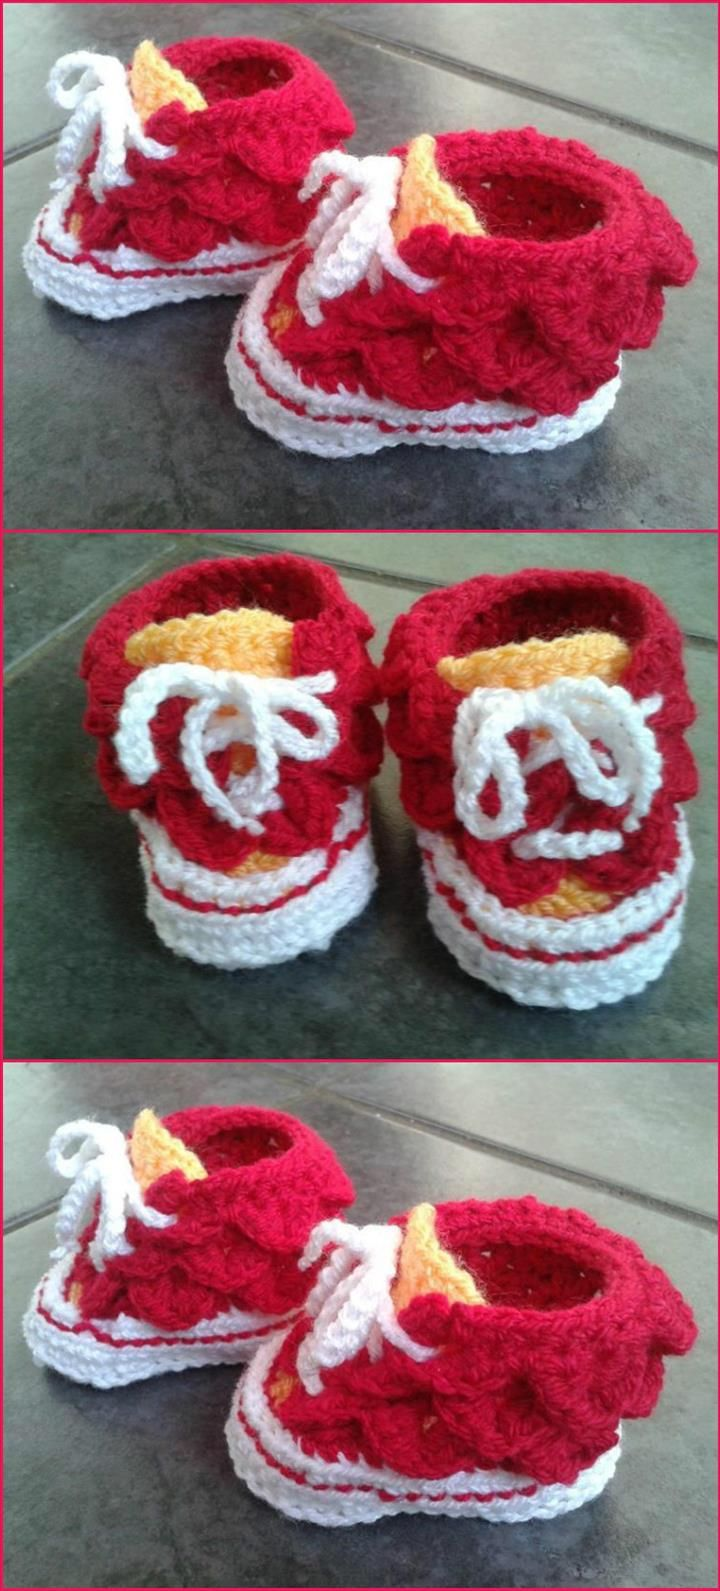 Crochet Baby Booties - Top 40 Free Crochet Patterns